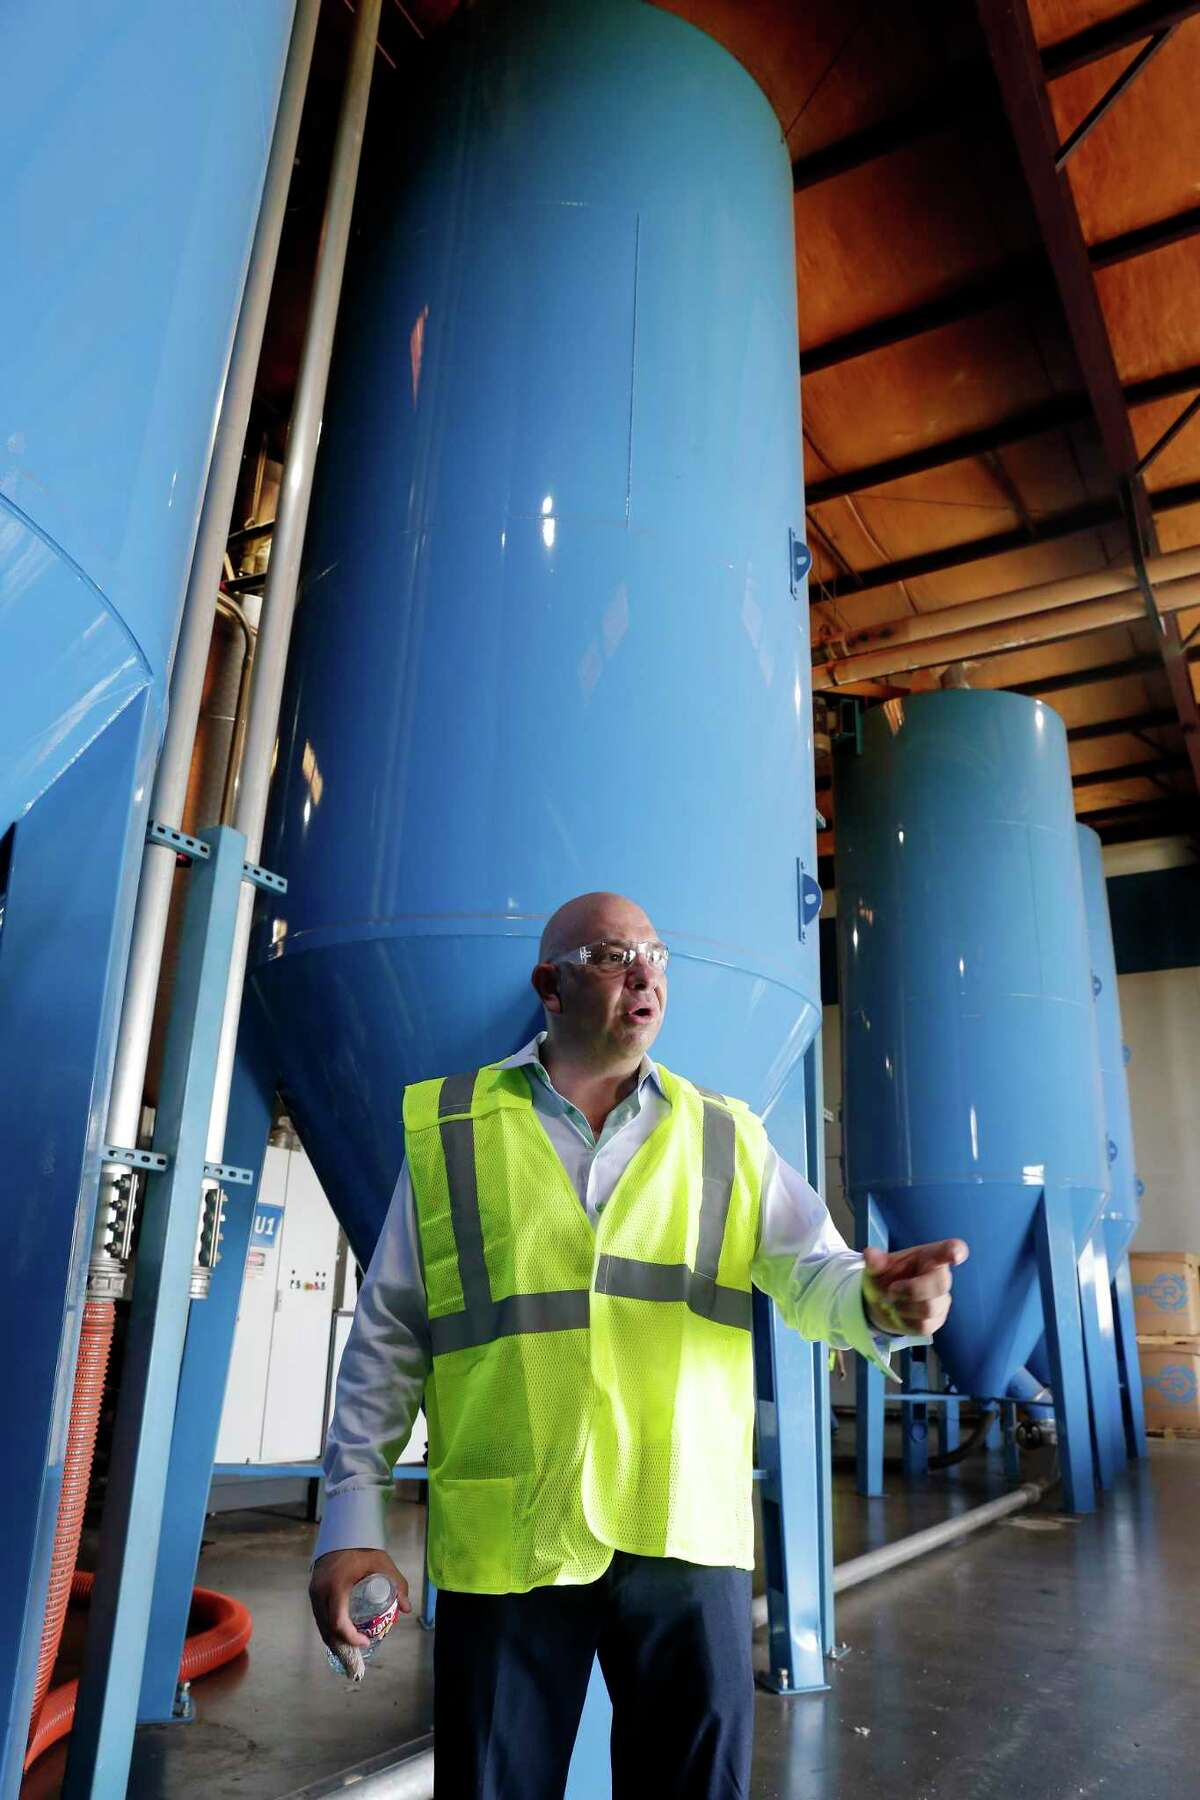 CEO Rick Perez in front of silos containing newly processed recycled plastic pellets at the Avangard Innovative recycling facility and company headquarters Wednesday, Aug. 28, 2019 in Houston, TX.